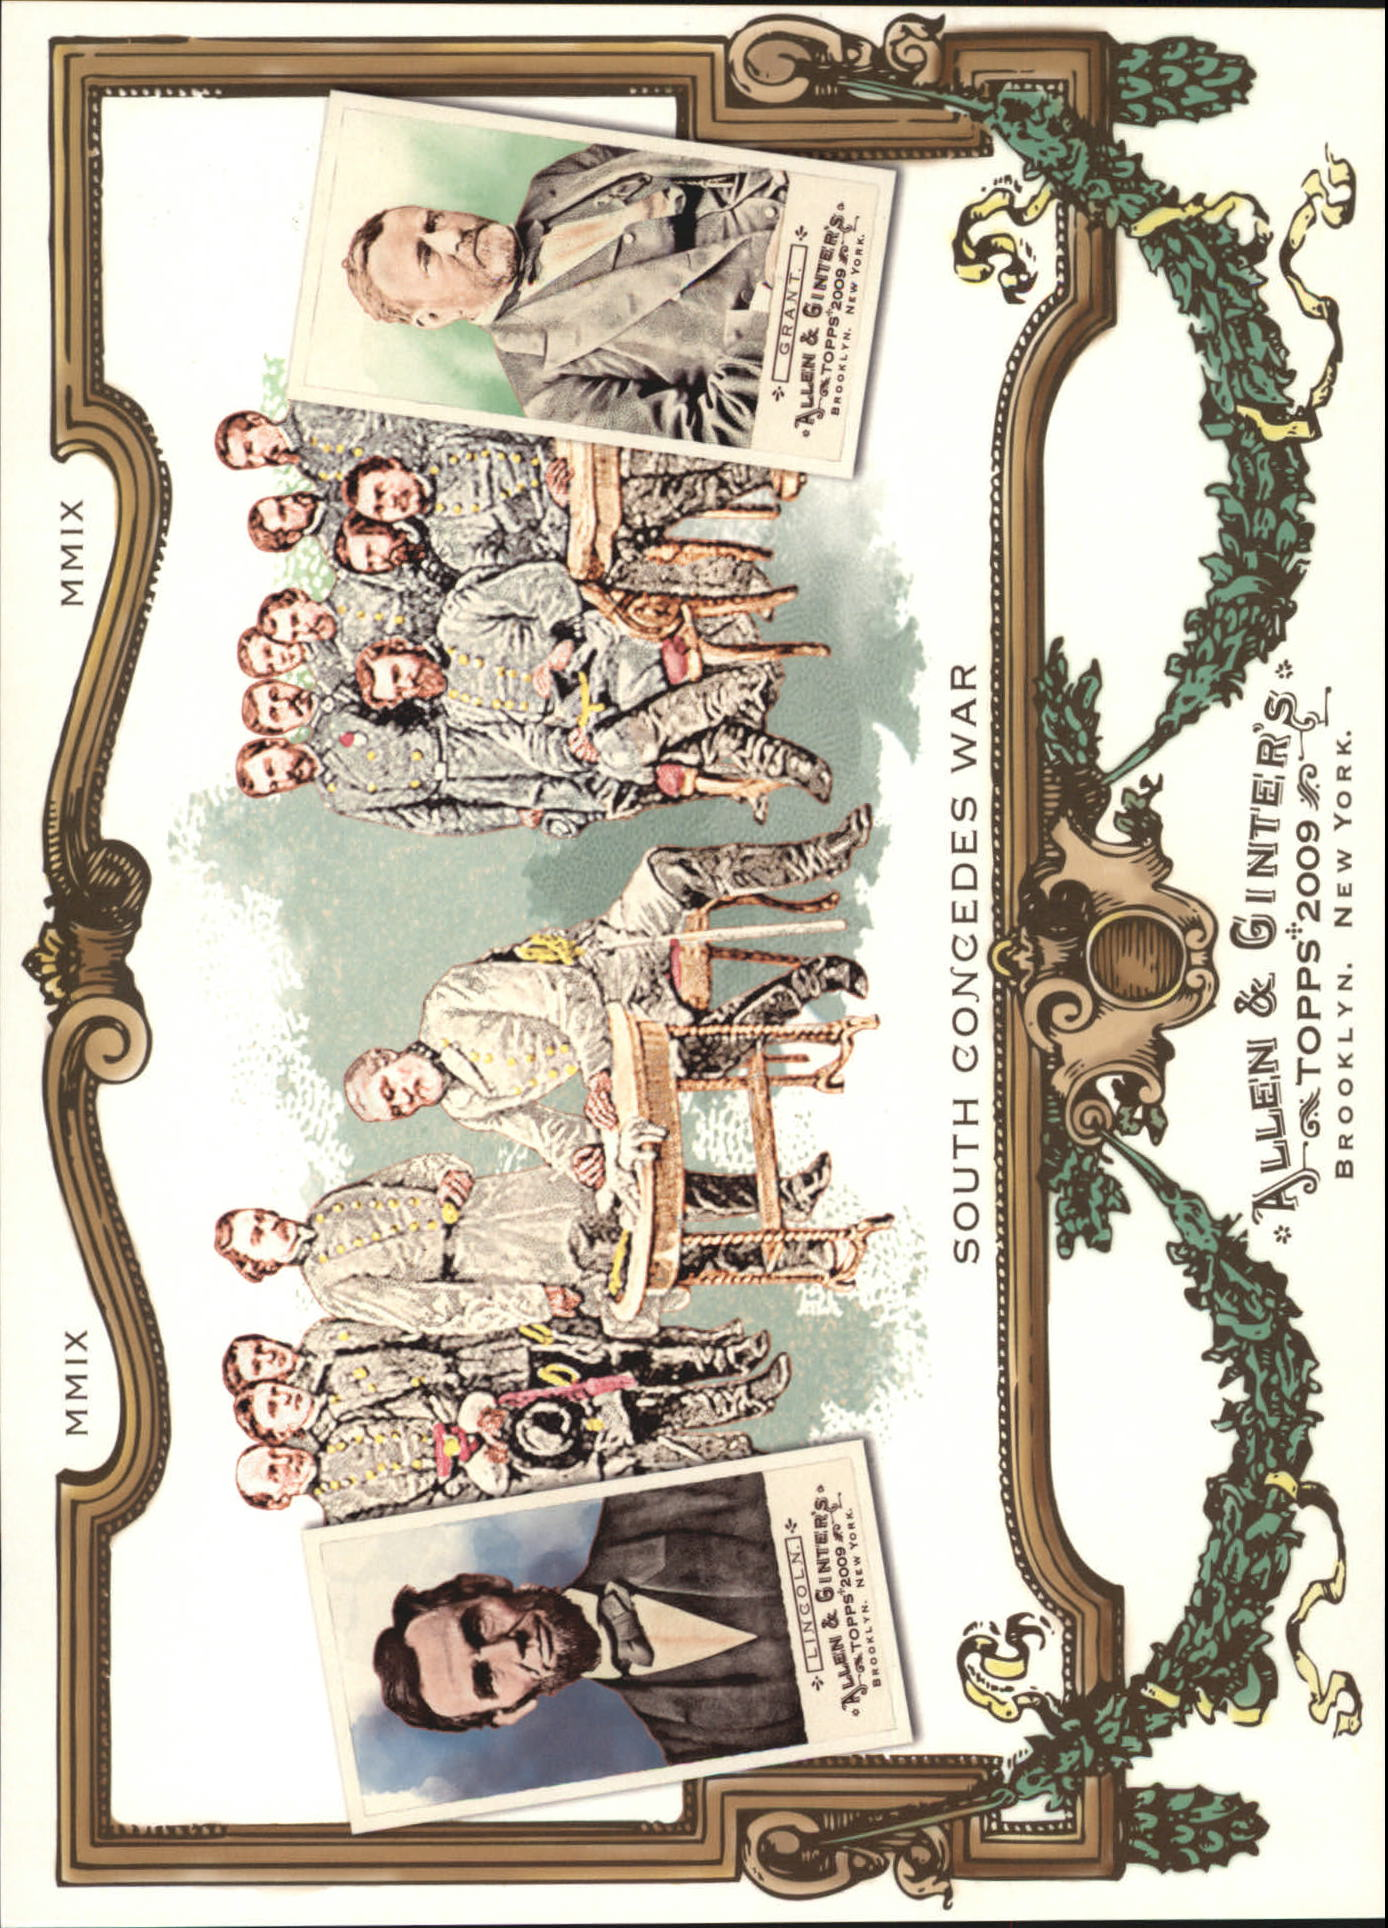 2009 Topps Allen and Ginter Cabinet Boxloaders #CB9 Abraham Lincoln/Ulysses S. Grant